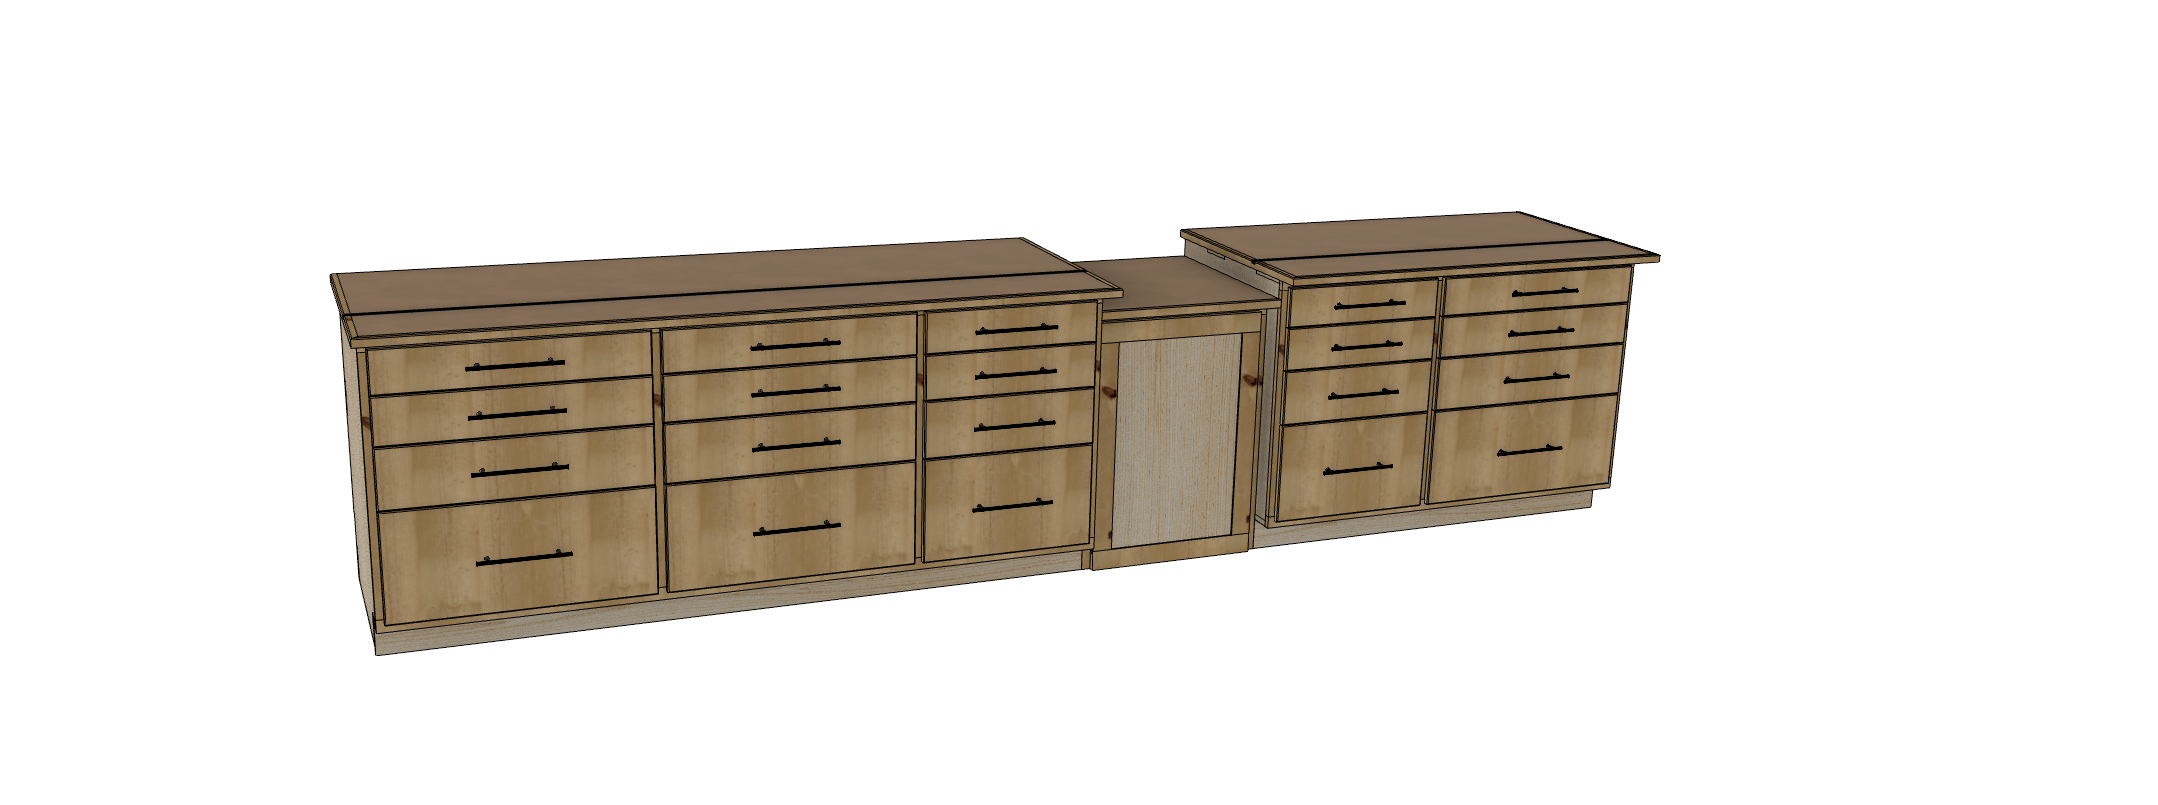 Ultimate Cabinets miter station.png